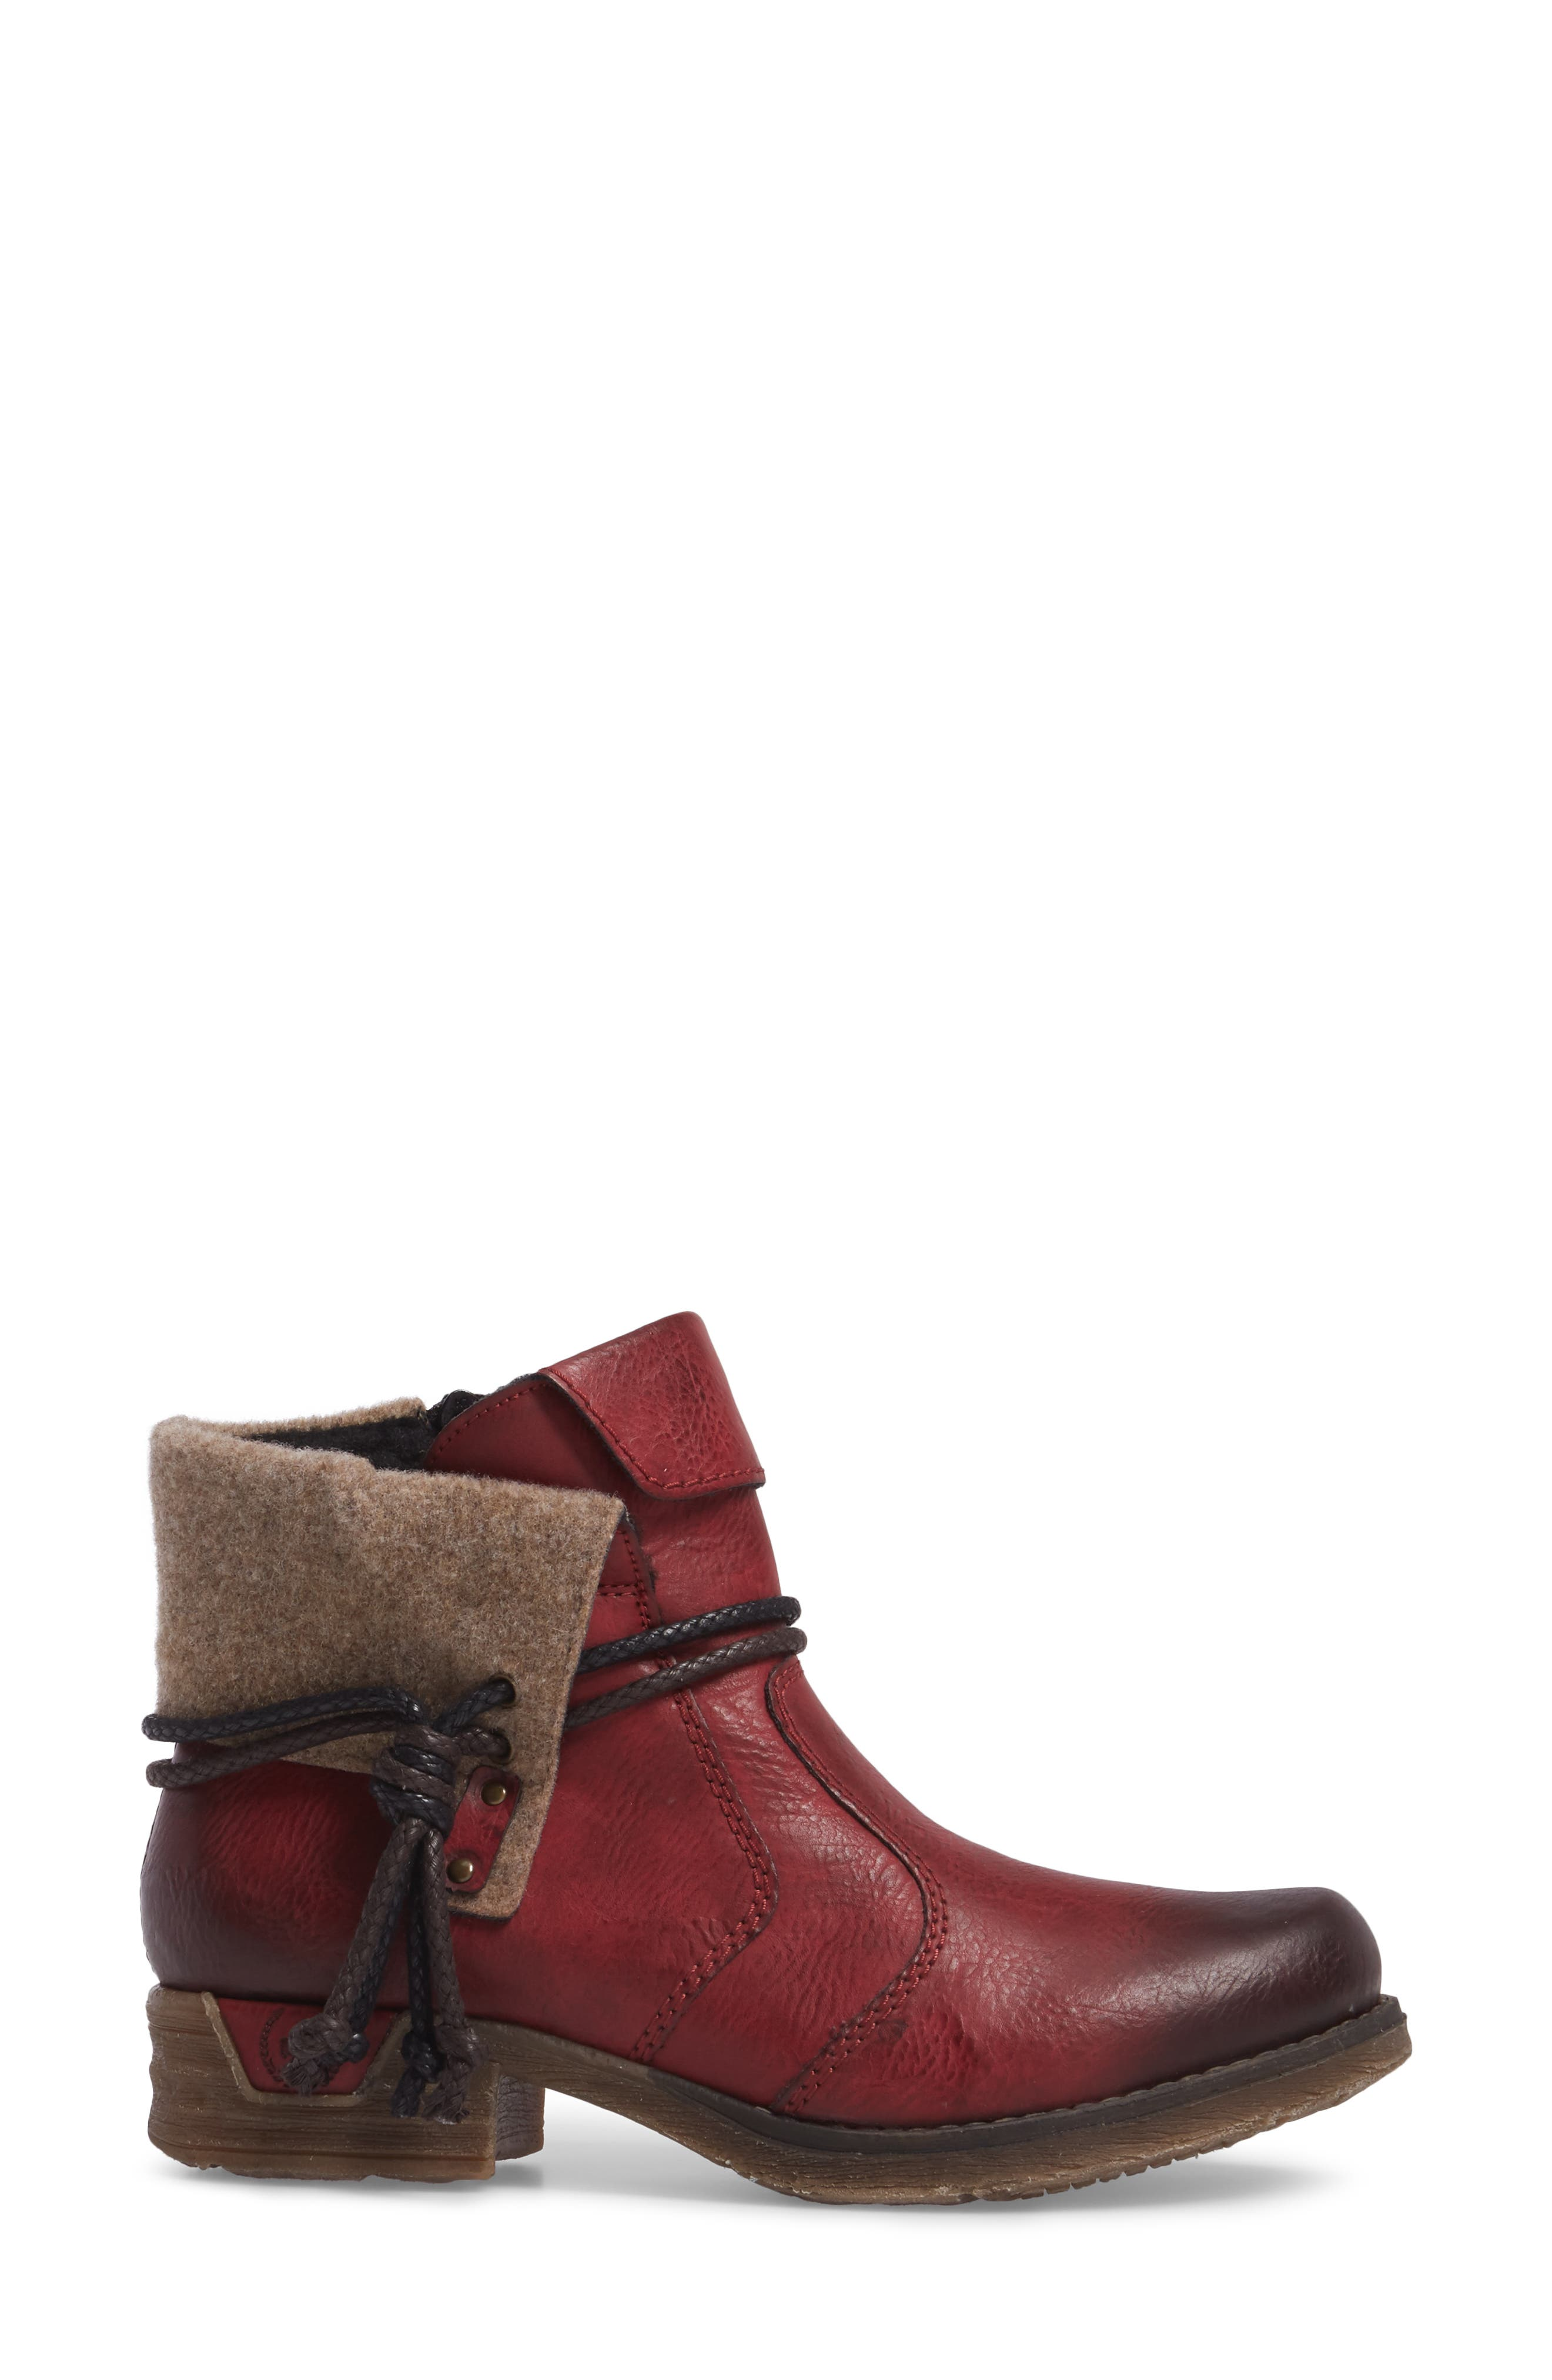 'Fee 93' Cuffed Shaft Bootie,                             Alternate thumbnail 3, color,                             Wine Faux Leather